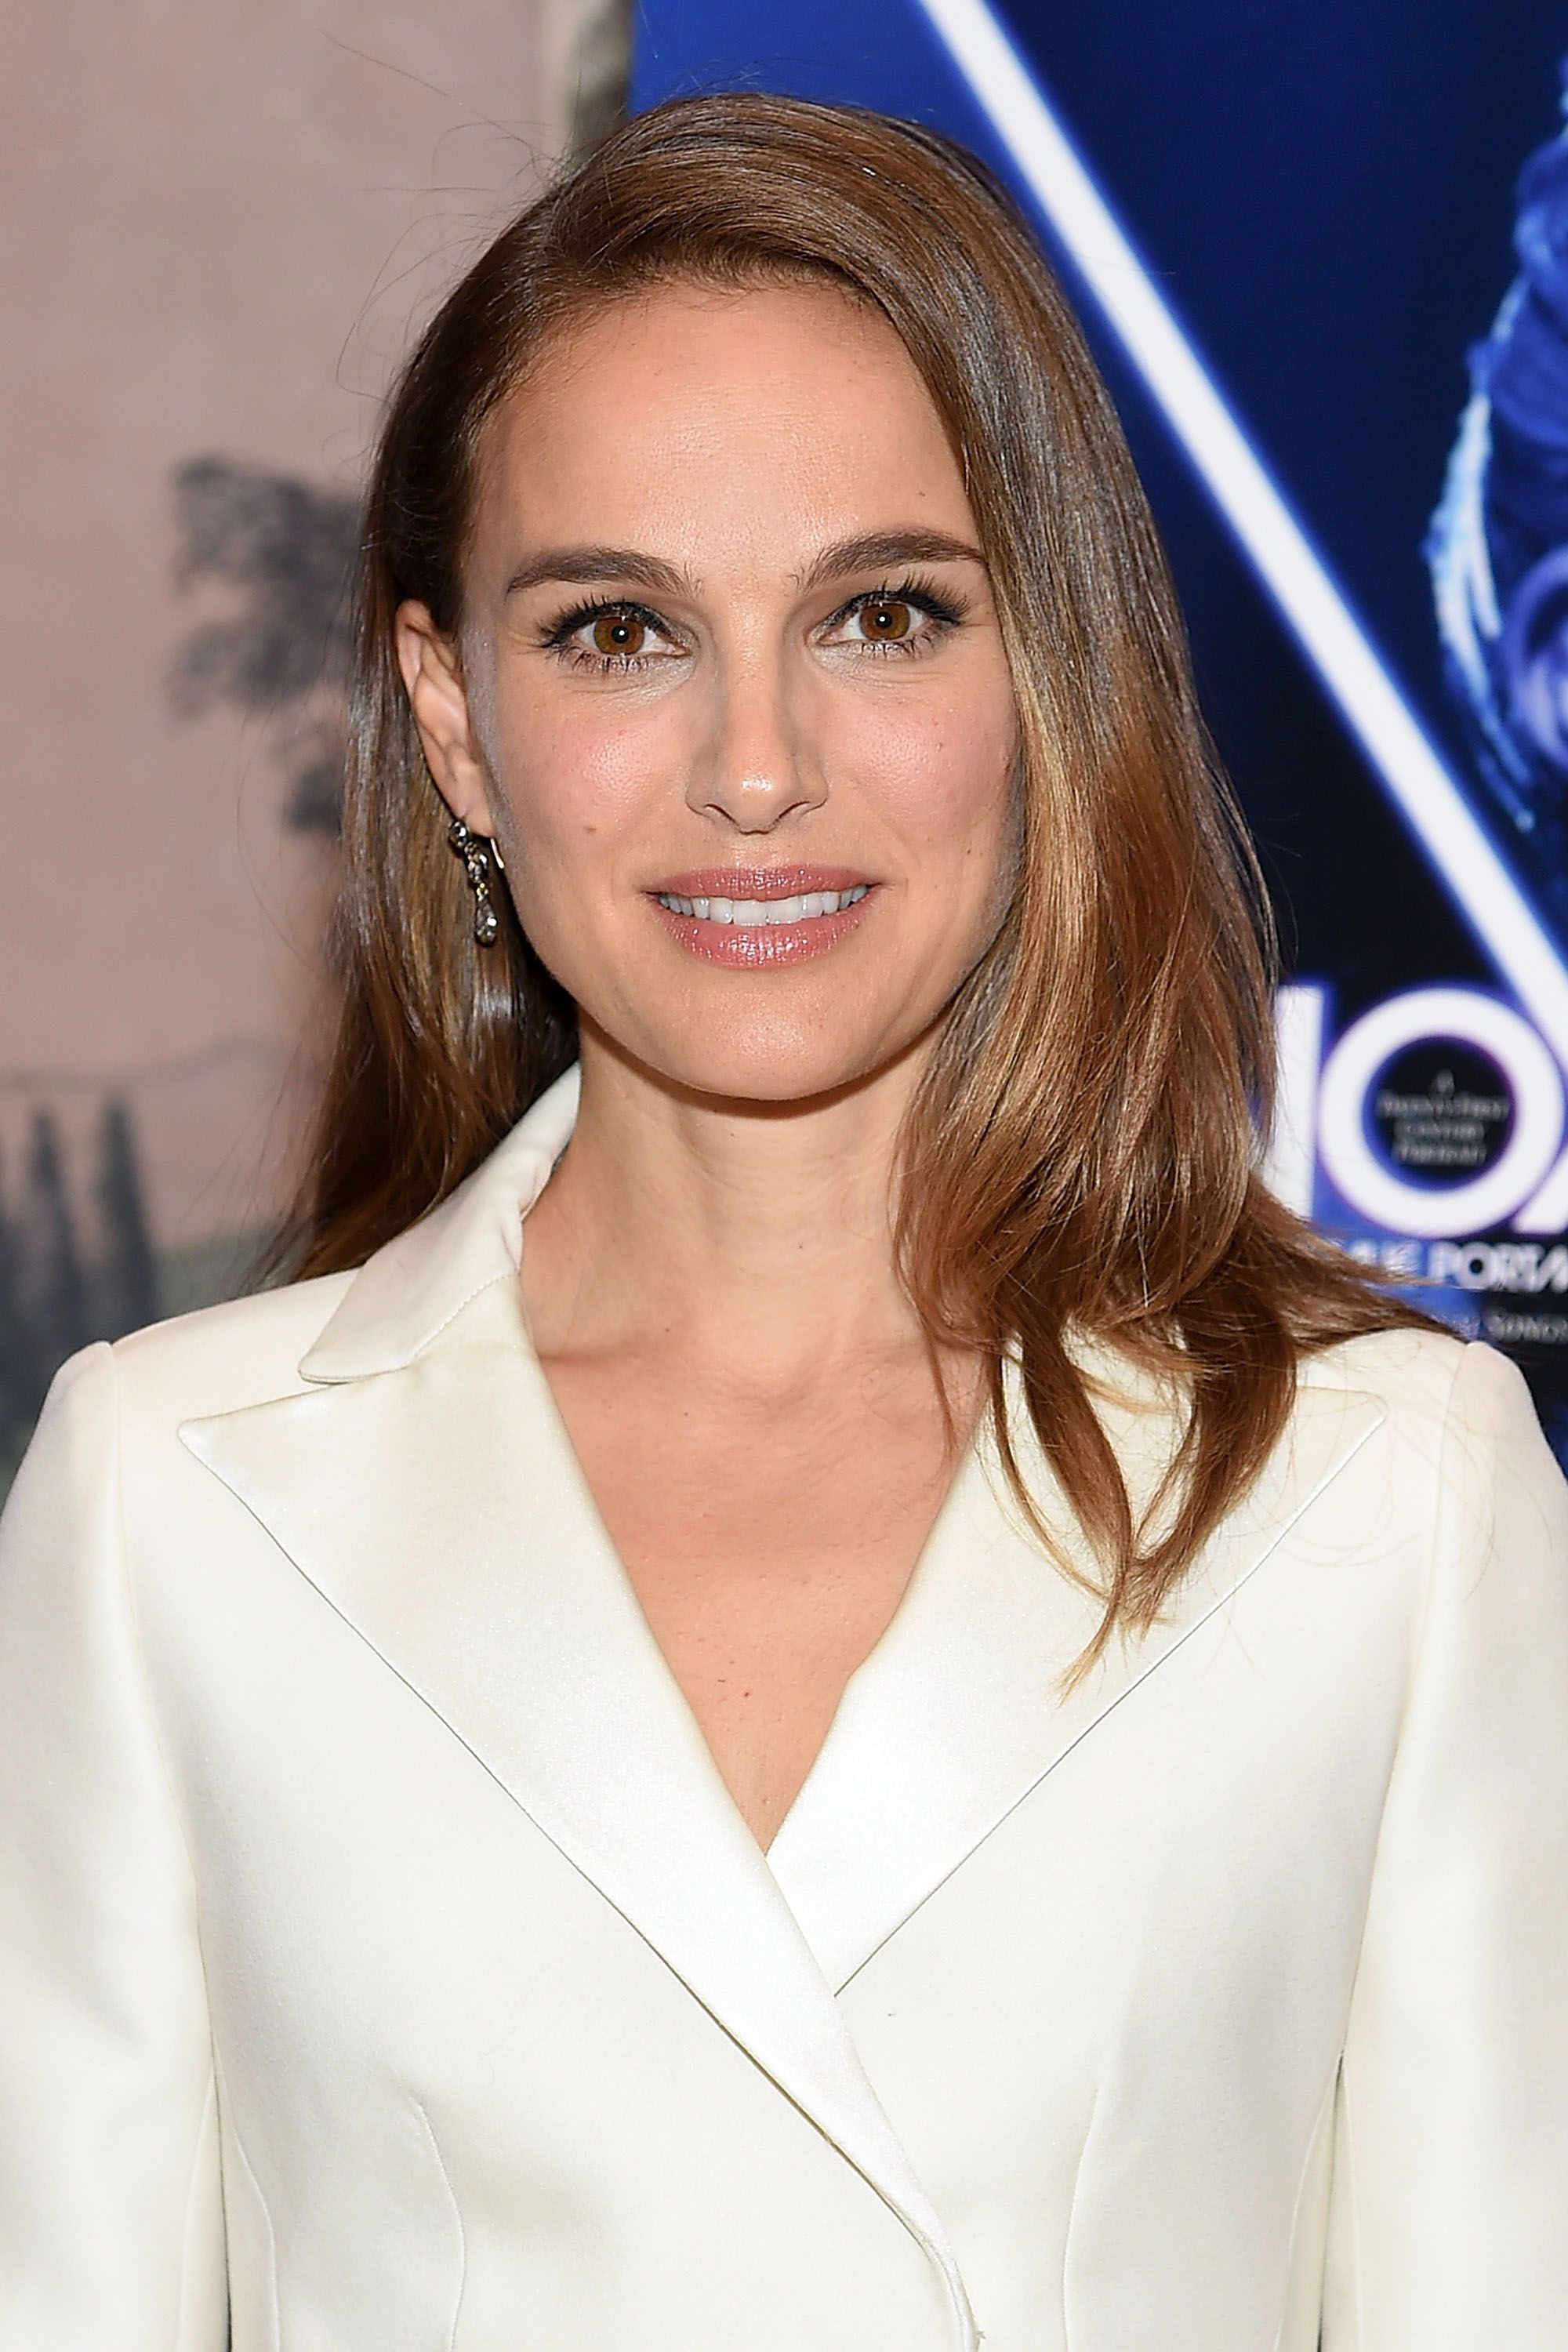 Haircuts for Women Over 30 - Natalie Portman